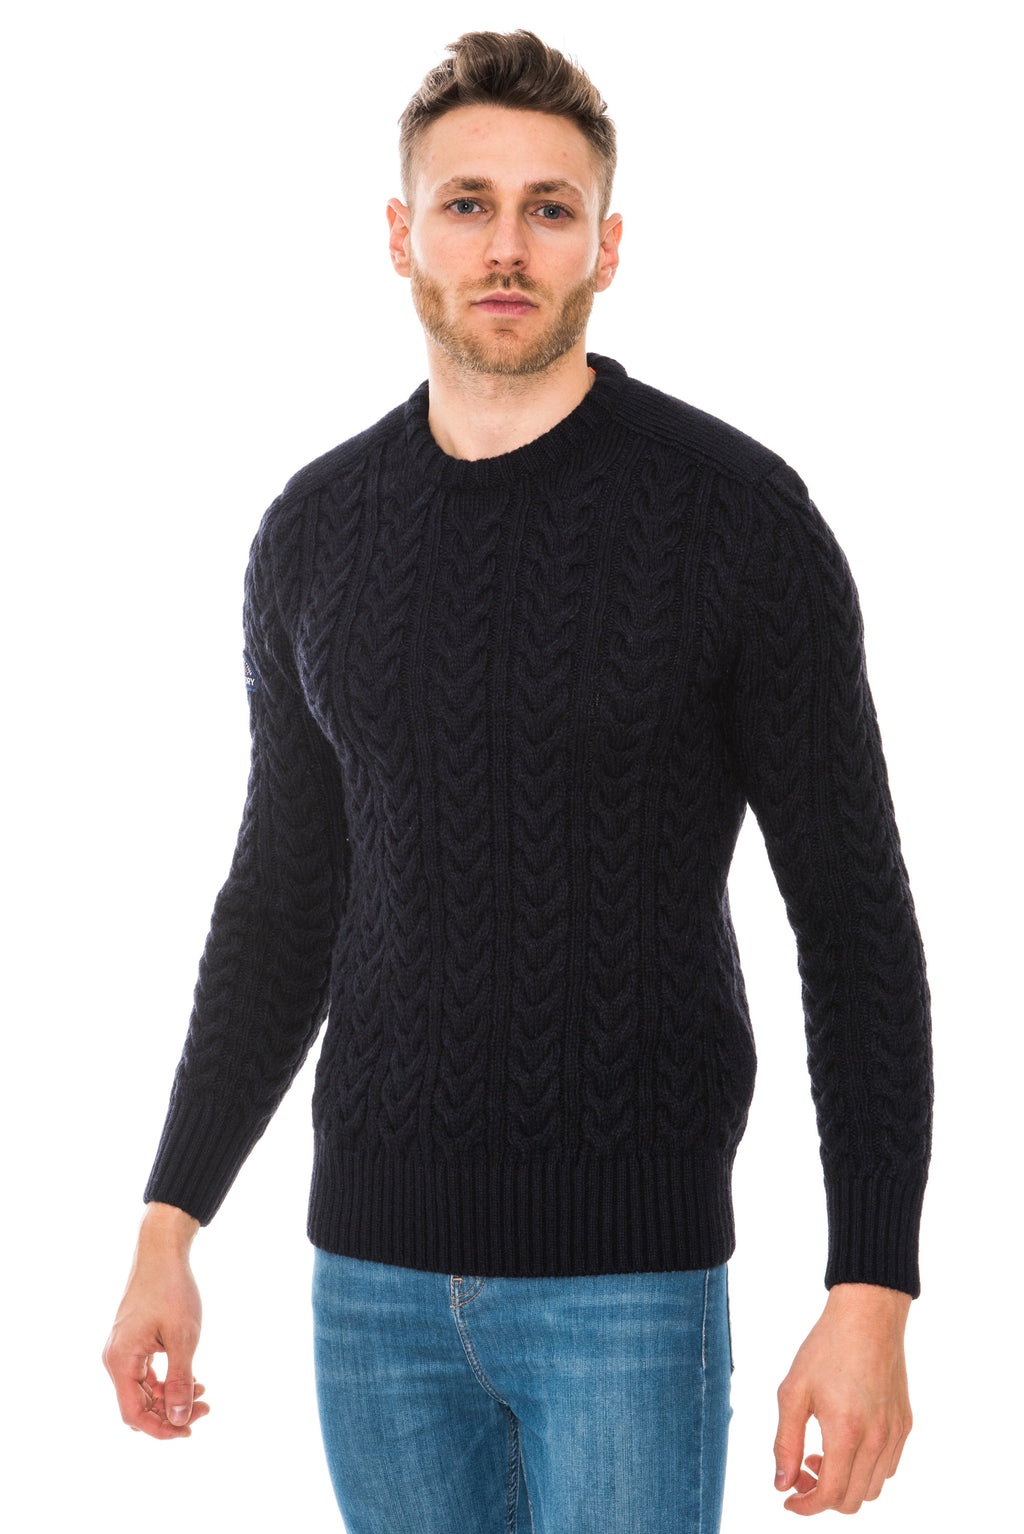 SUPERDRY JACOB CREW JUMPER - NAVY/BLACK TWIST